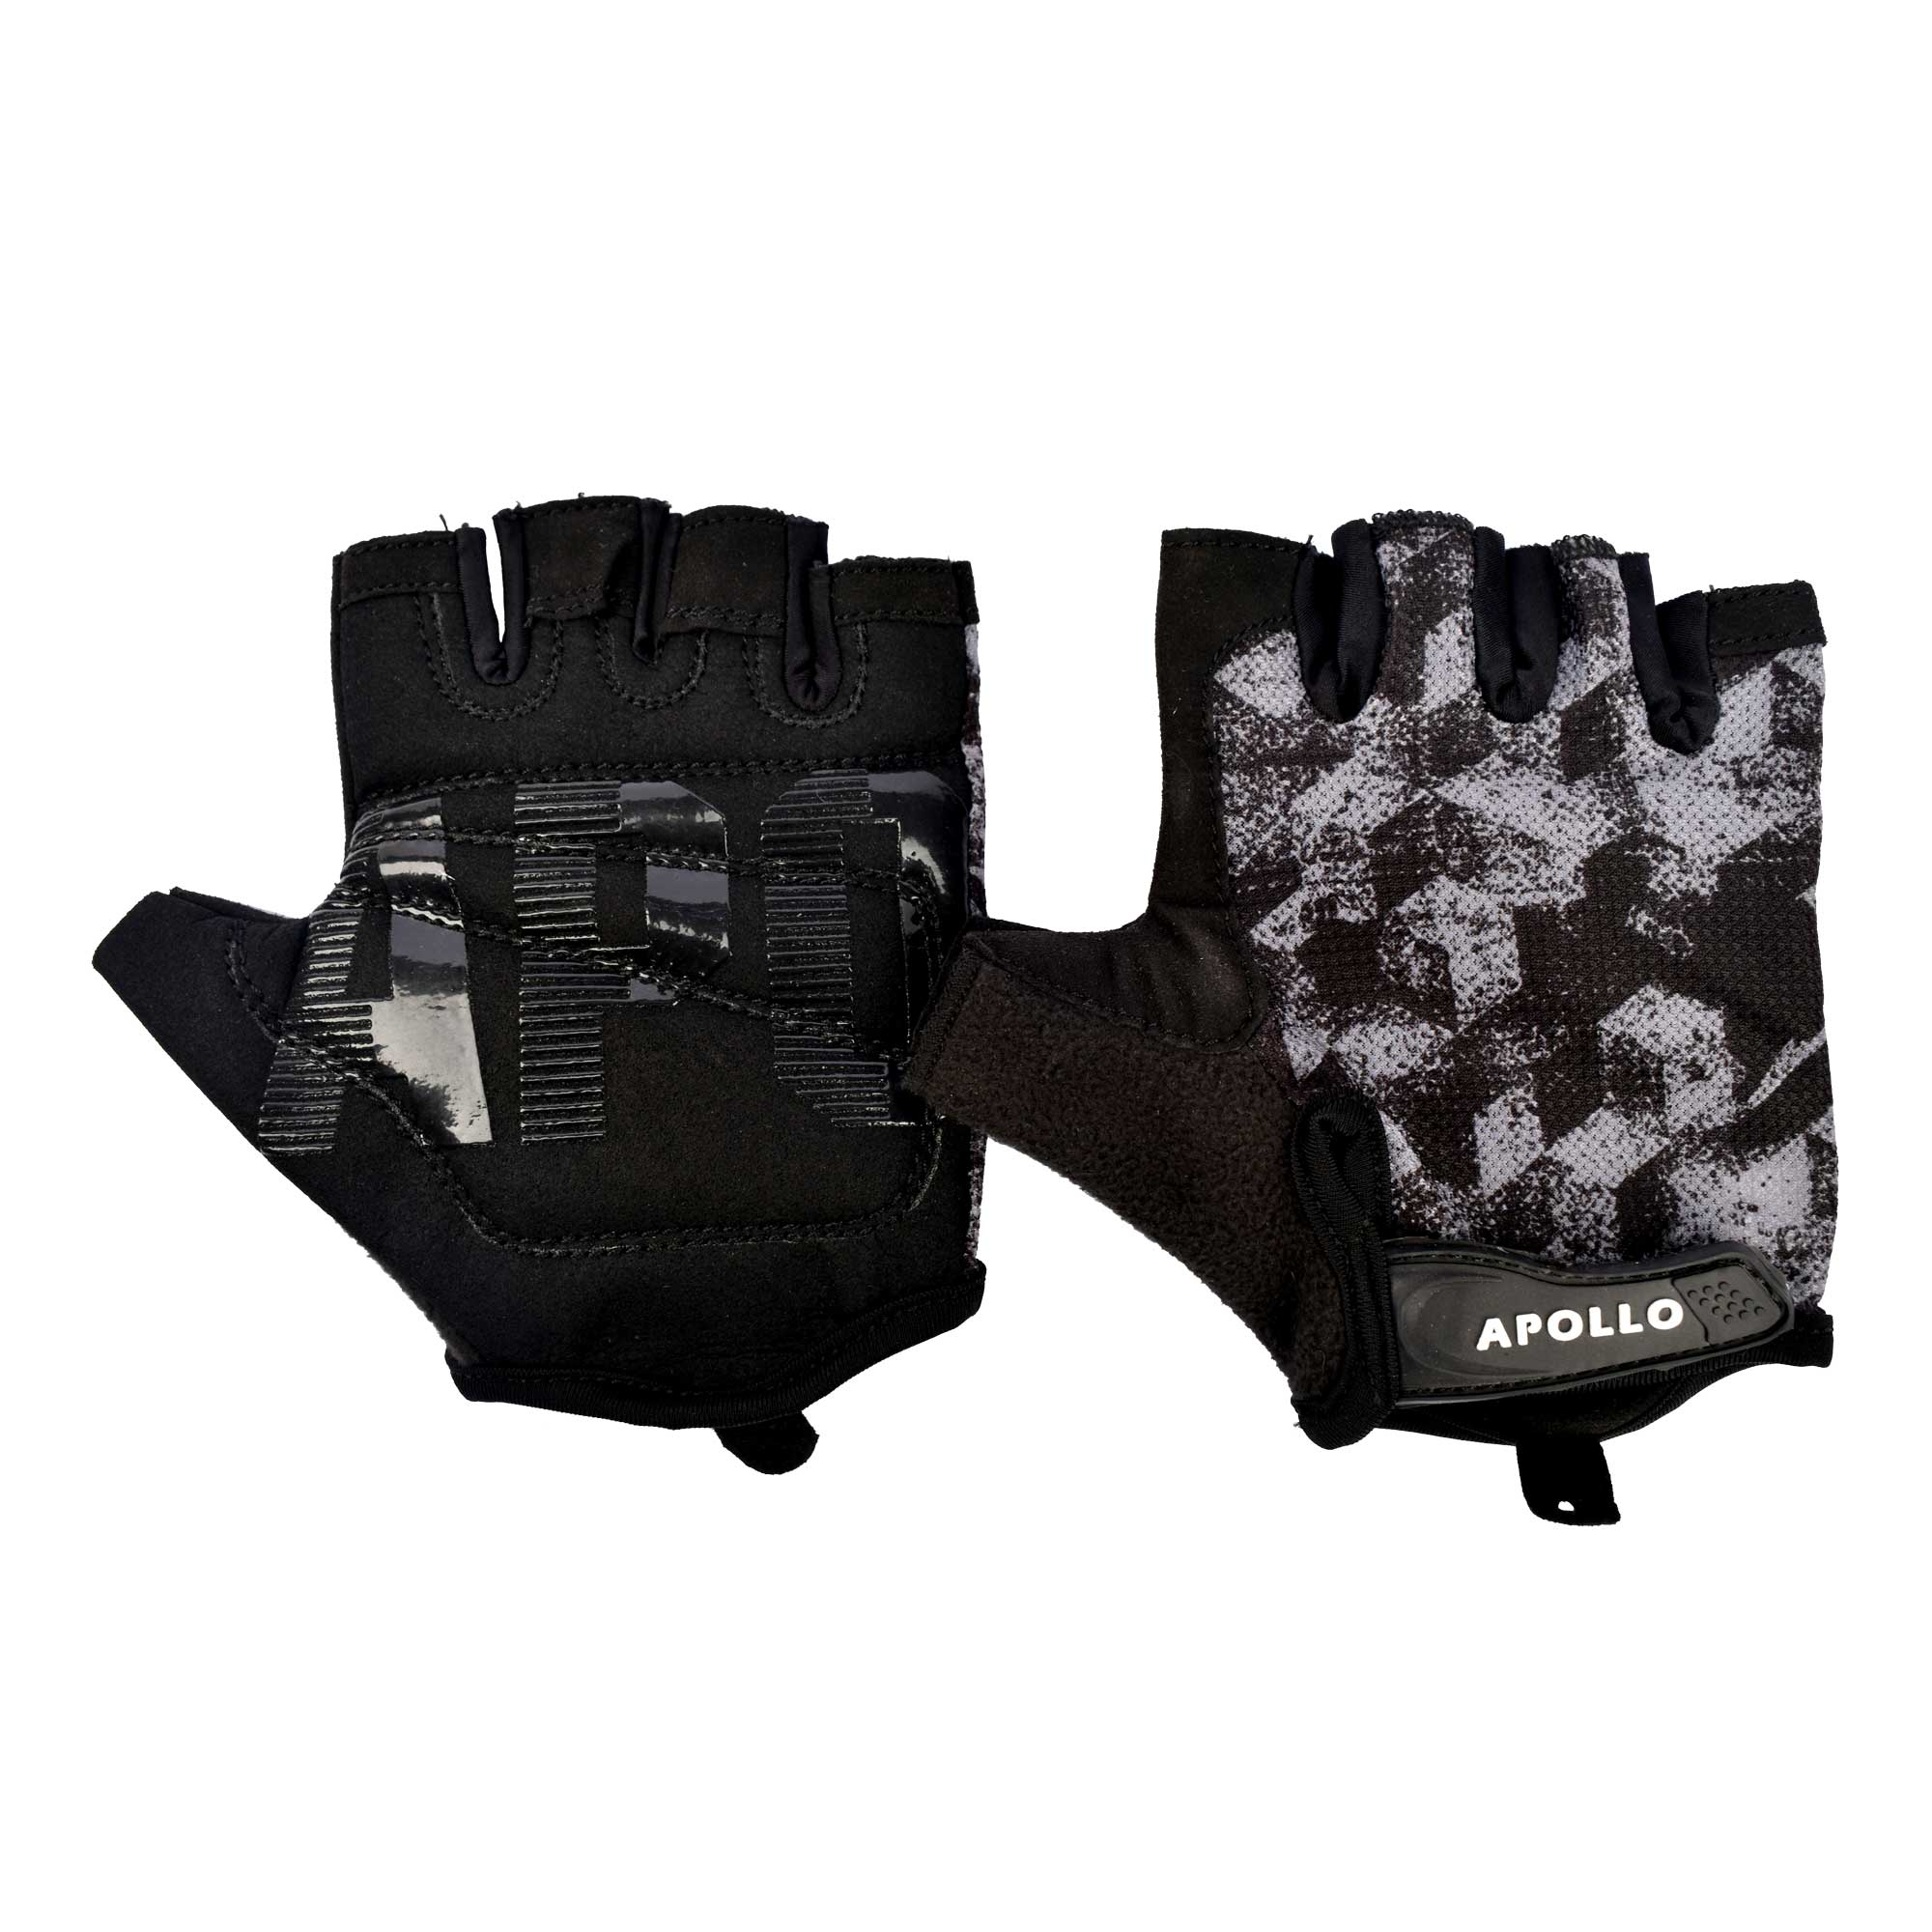 APOLLO WEIGHT LIFTING TRAINING GYM GLOVES FAWG27 - BLACKGRAY